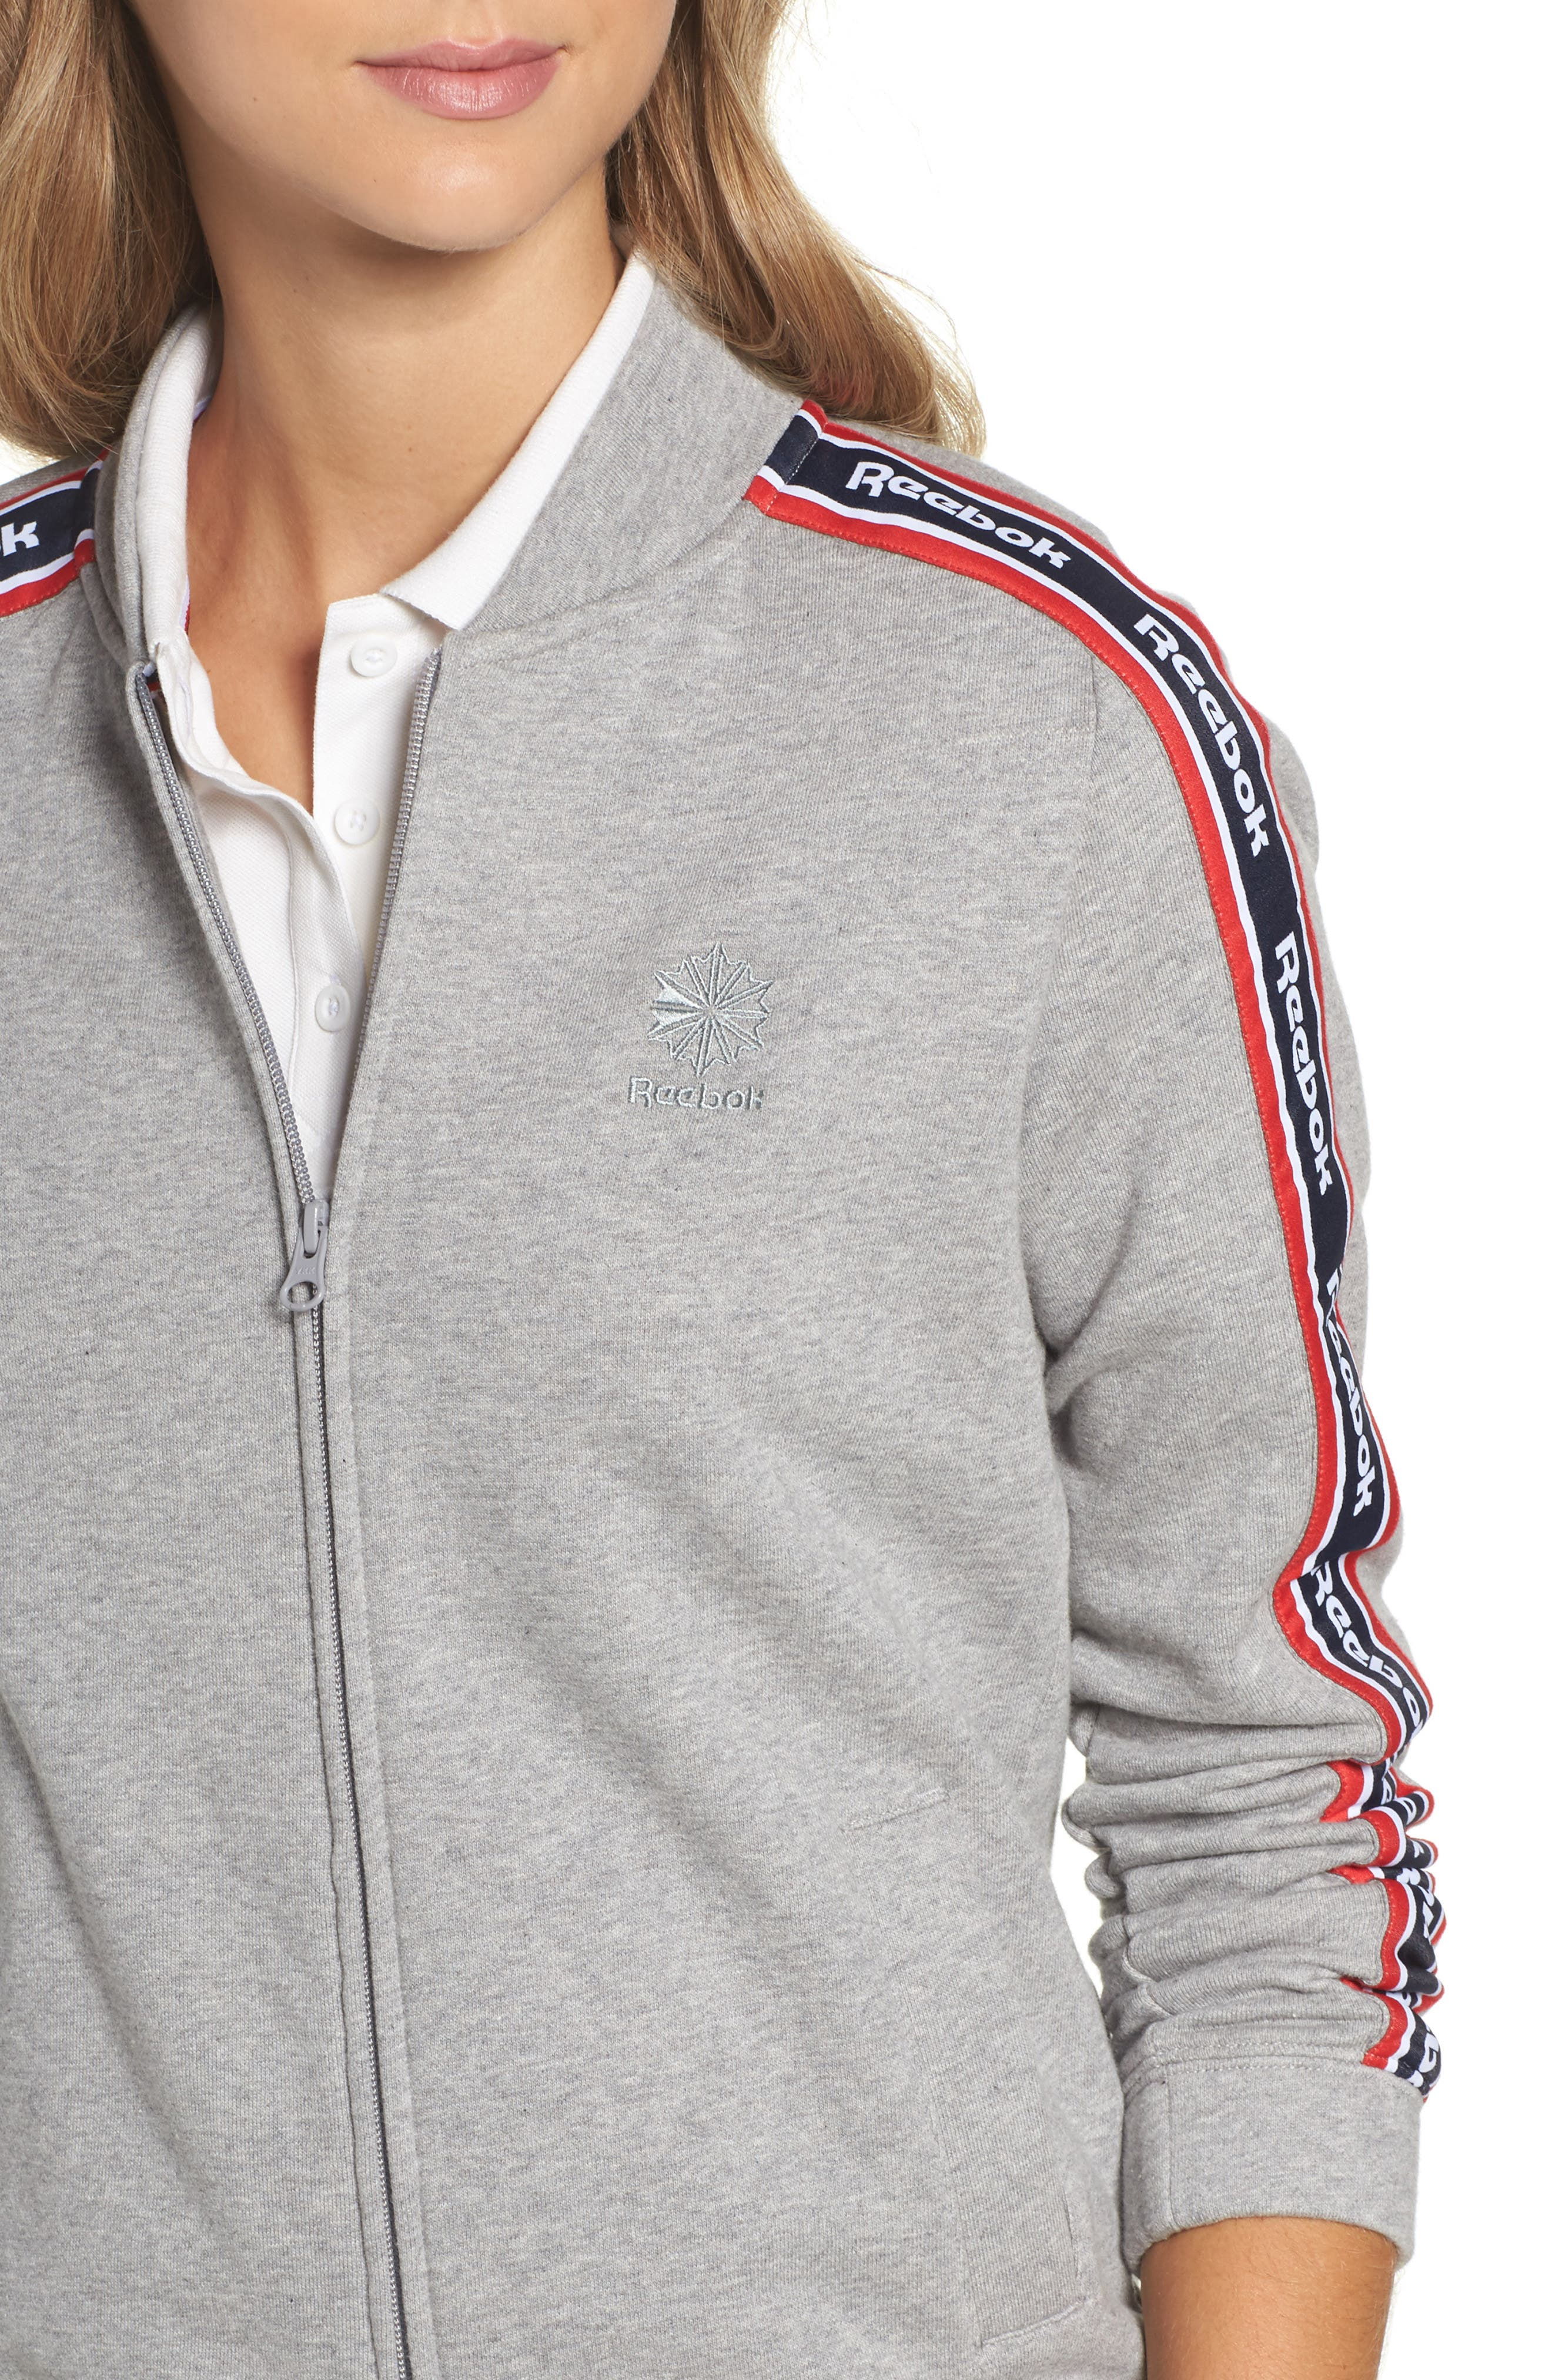 Coach French Terry Jacket,                             Alternate thumbnail 4, color,                             065